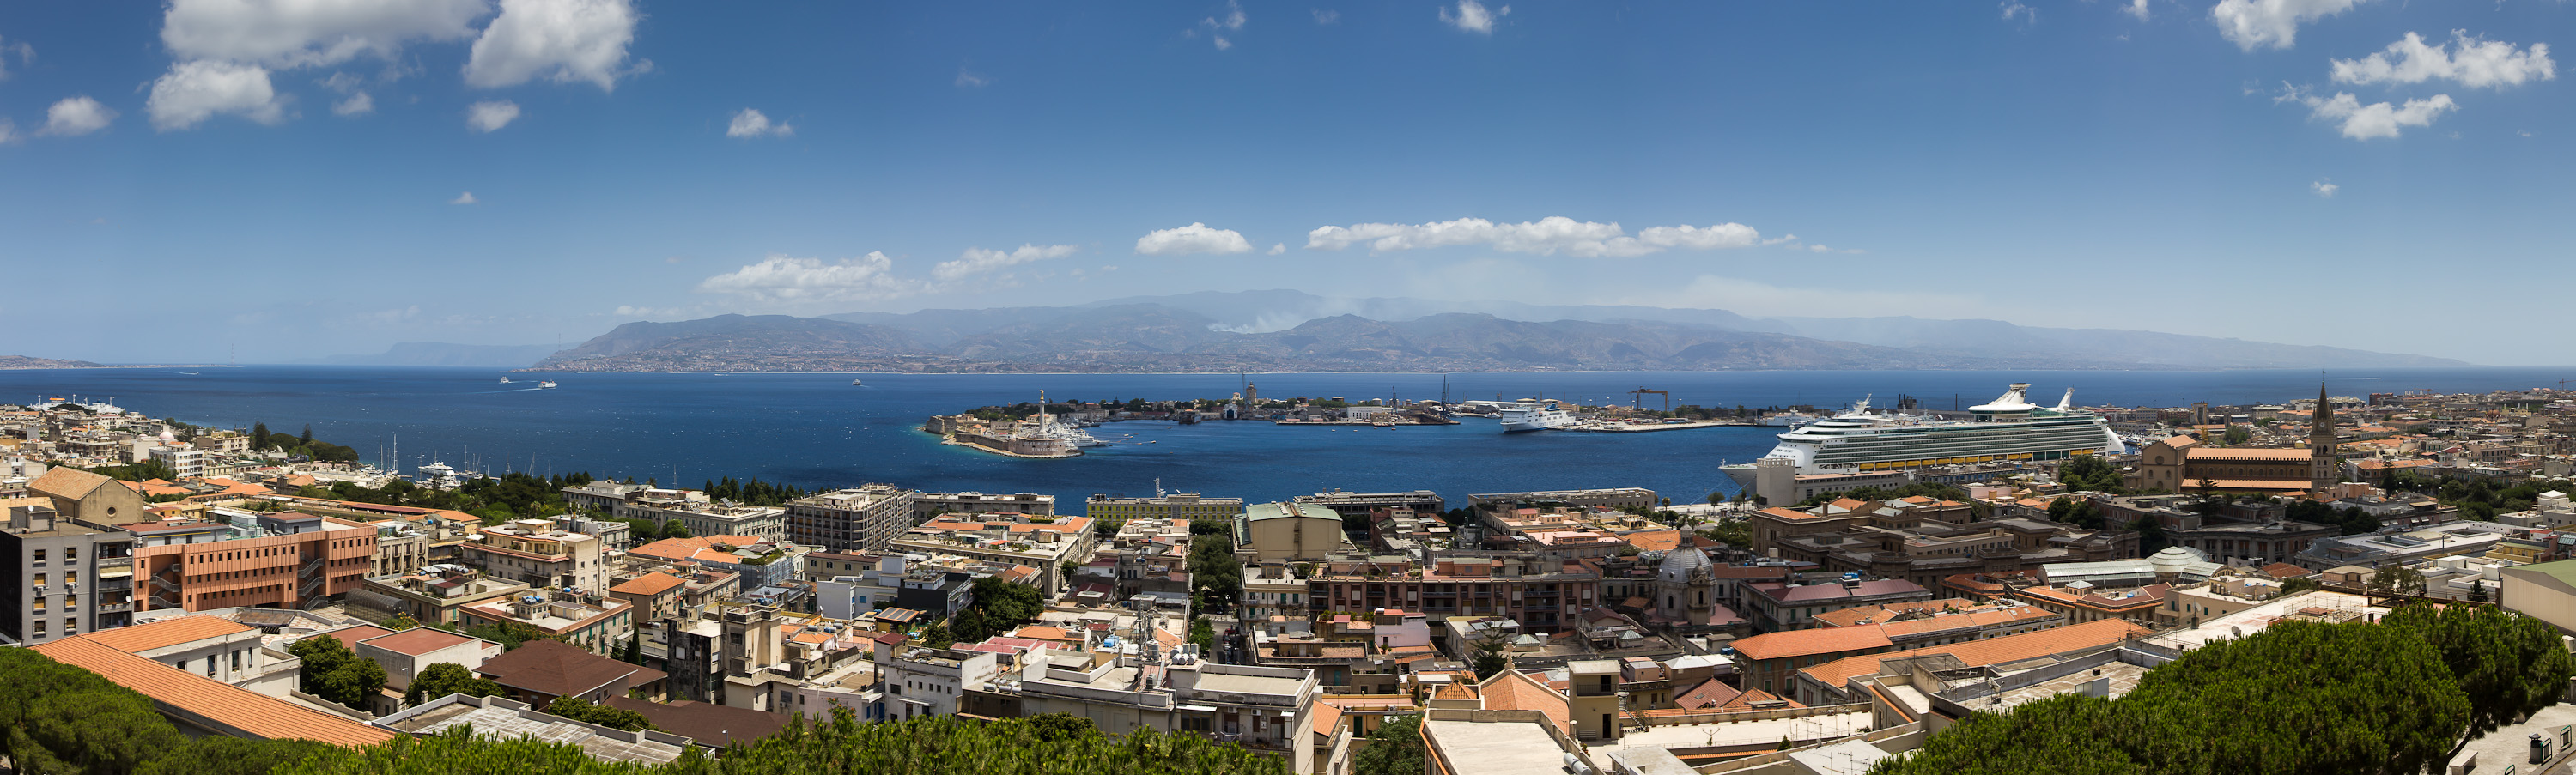 Messina Strait seen from Messina towards the Italian Mainland Panorama 1/320sec at f/8 ISO 100 EF-S 15-85 f3.5-5.6 IS USM at 28mm The Strait of Messina (Stretto di Messina in Italian, Strittu di Missina in Sicilian) is the narrow passage between the eastern tip of Sicily and the southern tip of Calabria in the south of Italy. It connects the Tyrrhenian Sea with the Ionian Sea, within the central Mediterranean. At its narrowest point, it measures 3.1 km (1.9 mi) in width, though near the town of Messina the width is some 5.1 km (3.2 mi) and maximum depth is 250 m (830 ft). A ferry service connects Messina on Sicily with the mainland at Villa San Giovanni, which lies several kilometers north of the large city of Reggio Calabria; the ferries hold the cars (carriages) of the mainline train service between Palermo and Naples. There is also a hydrofoil service between Messina and Reggio Calabria. The strait is characterized by strong tidal currents, that established a unique marine ecosystem. A natural whirlpool in the Northern portion of the strait has been linked to the Greek legend of Scylla and Charybdis. In some circumstances, the mirage of Fata Morgana can be observed when looking at Sicily from Calabria (Wikipedia)